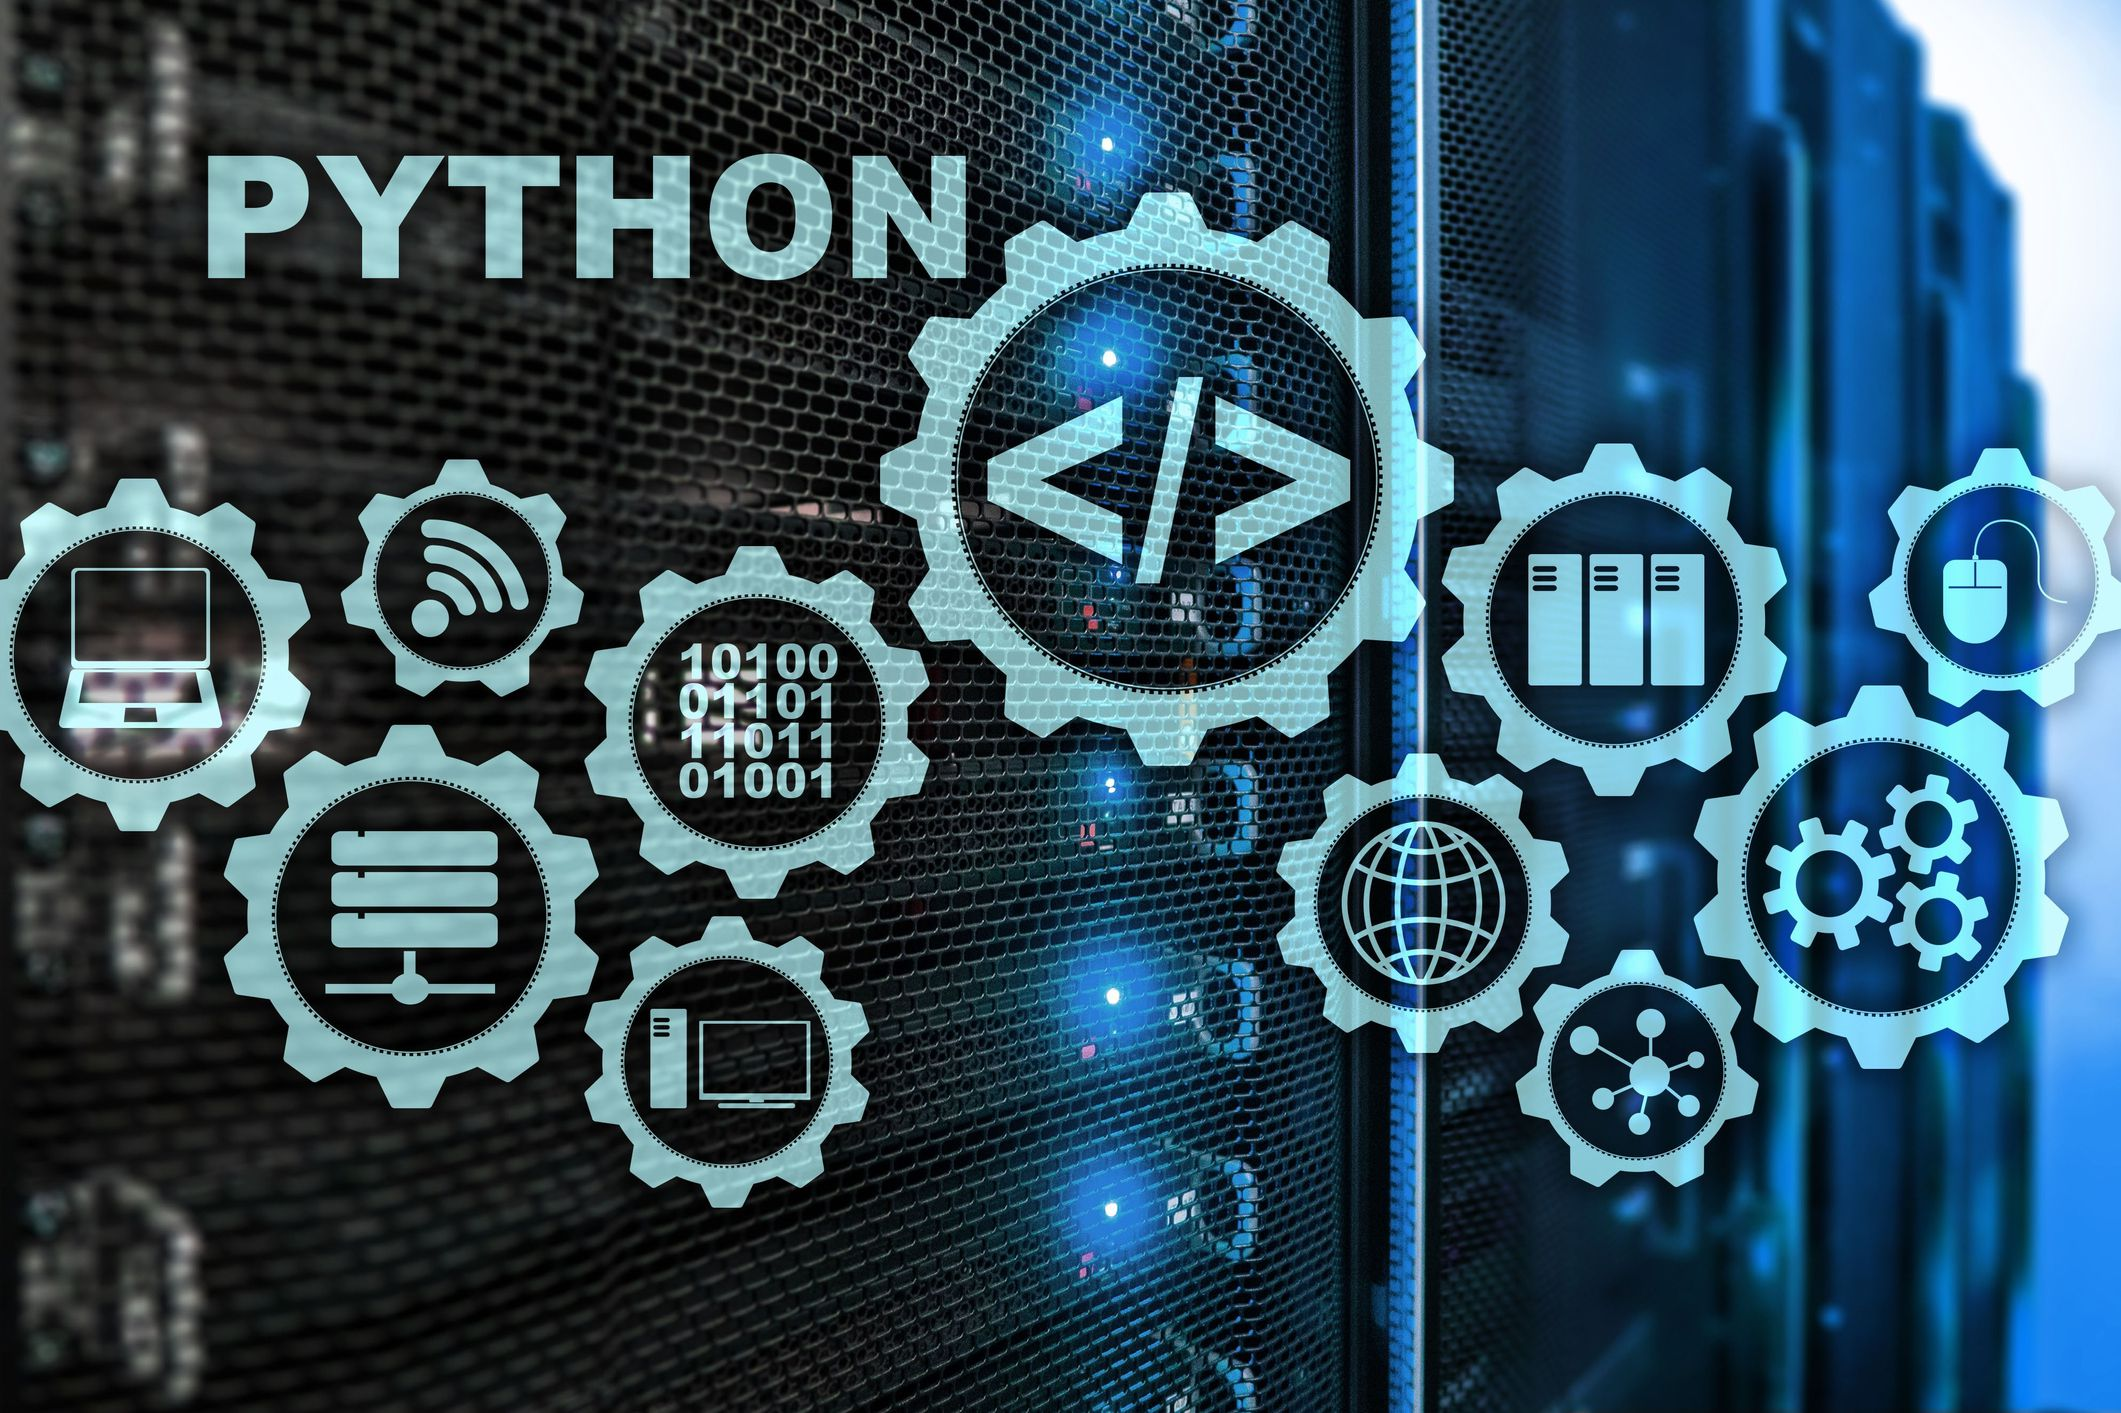 Here's How to install the Latest Python Release on Your Mac